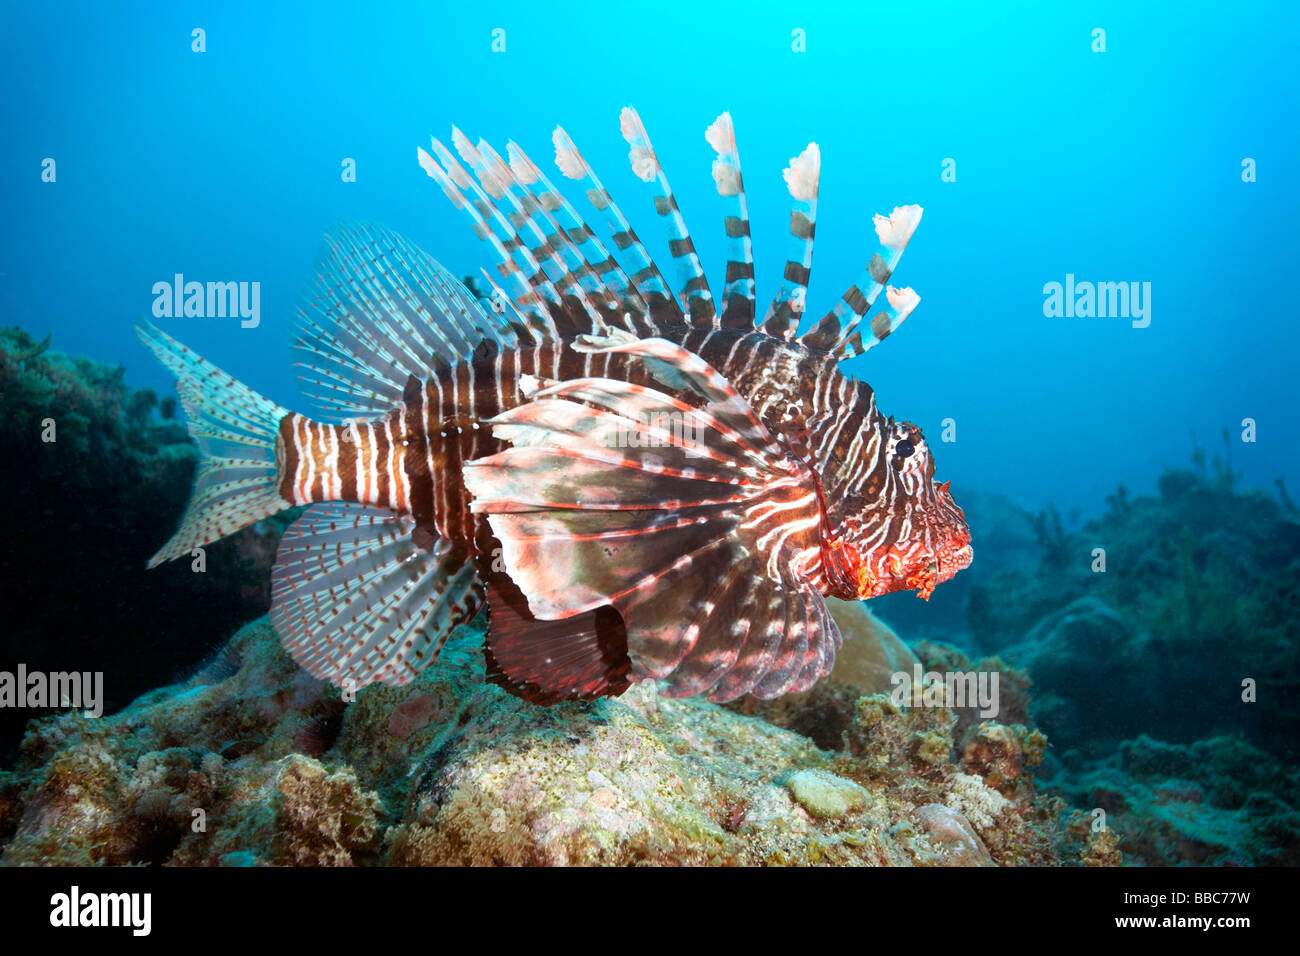 Lion Fish on Mikanda Reef, Zanzibar - Stock Image